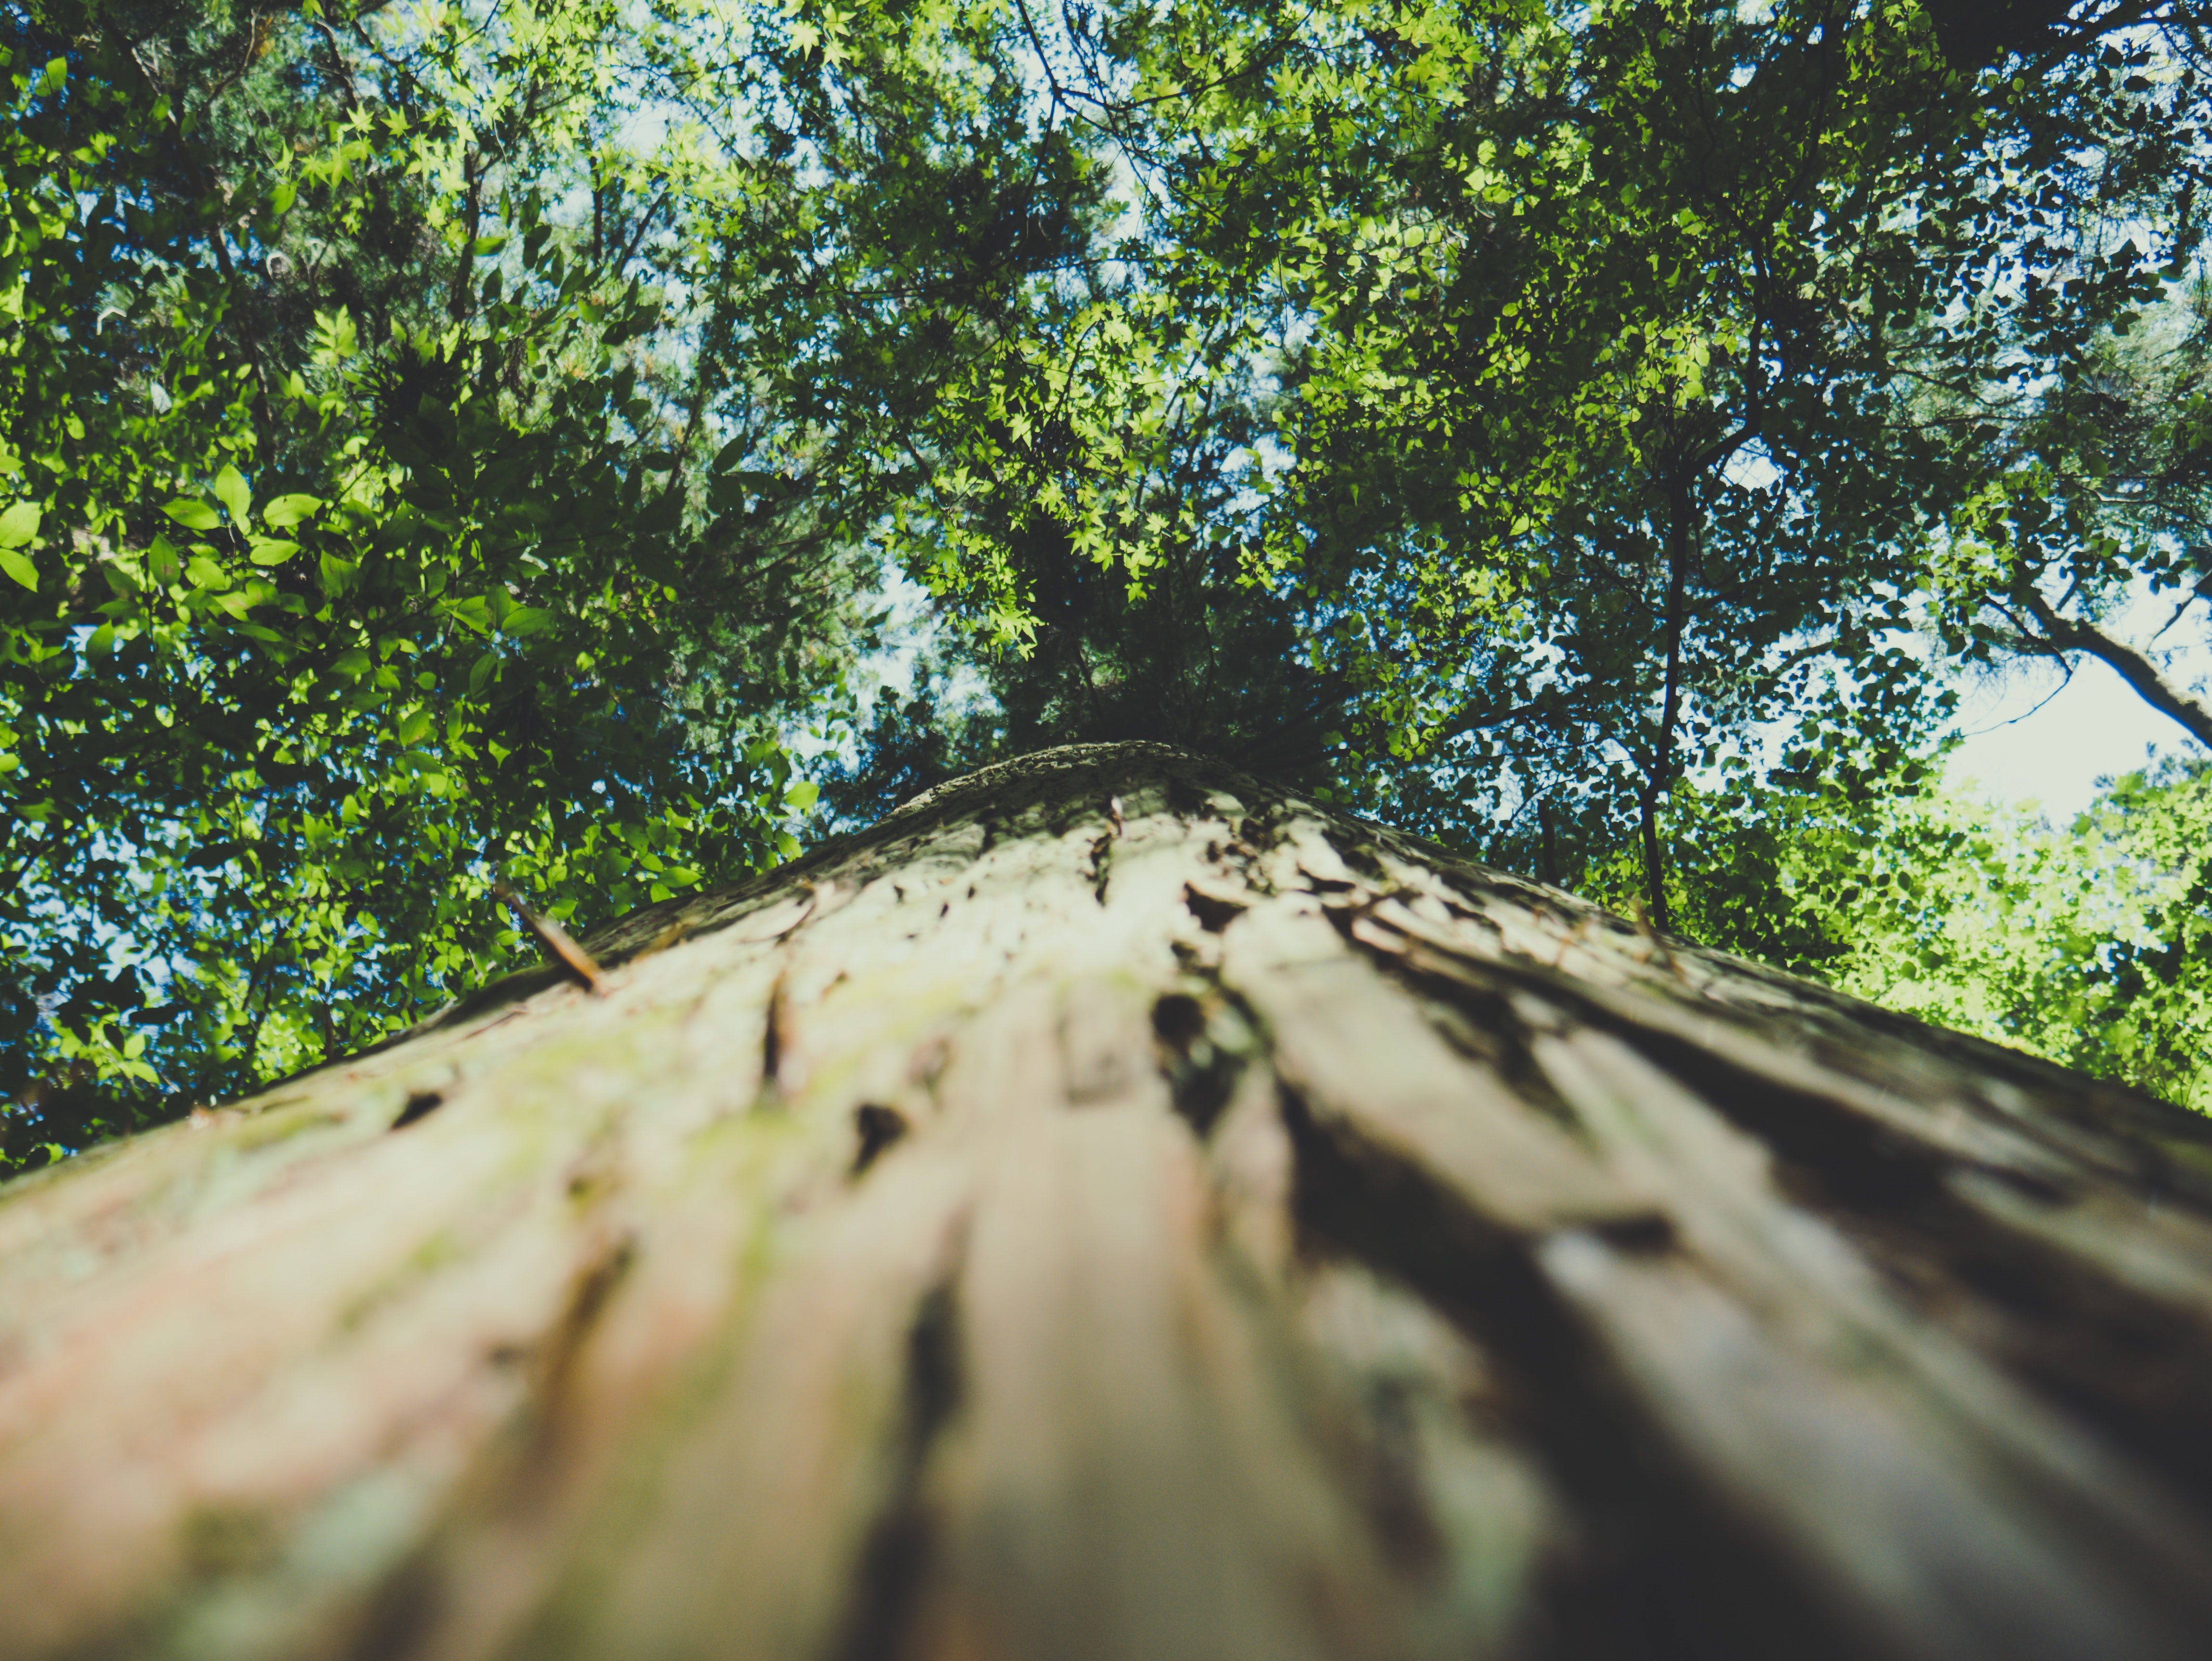 low-angle photography of tree during daytime